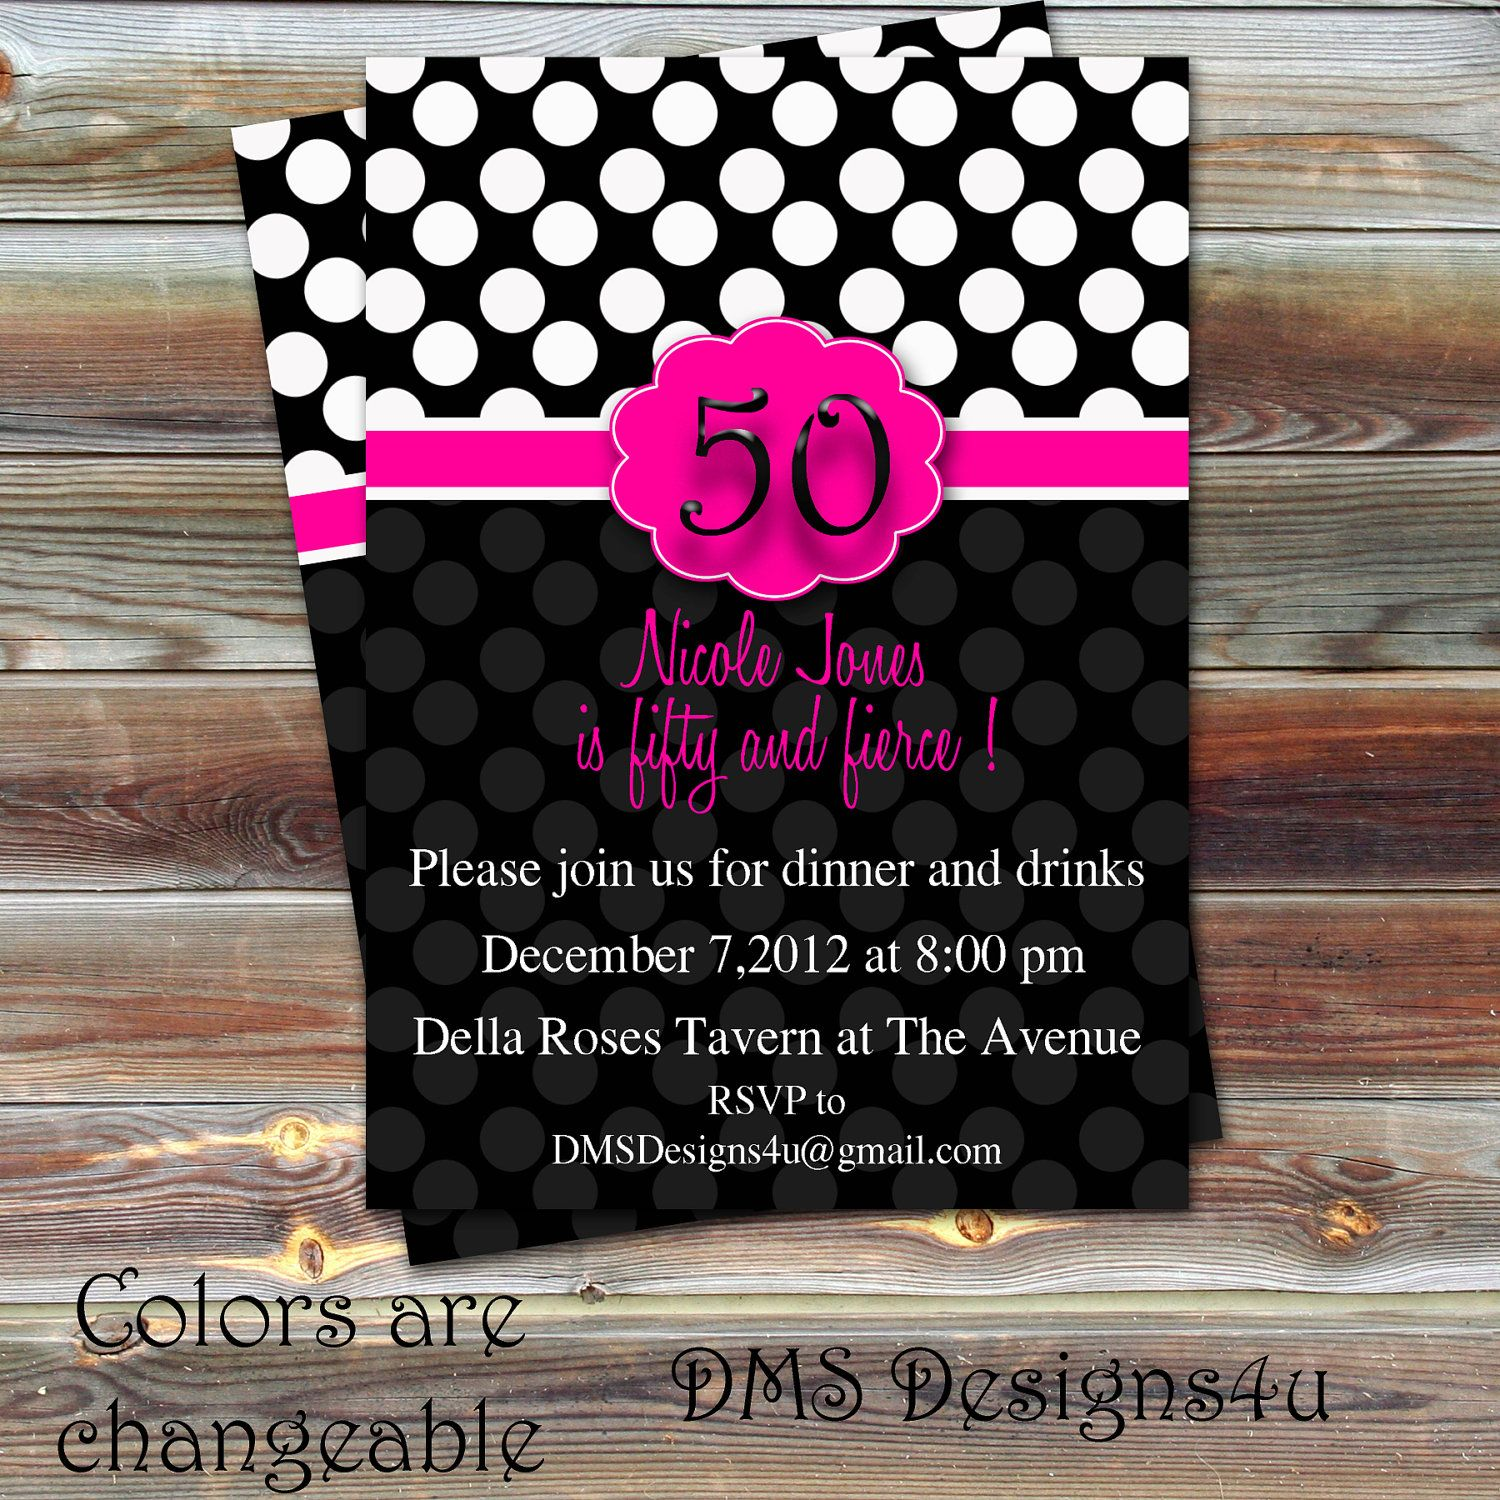 18 Birthday Invitations My Birthday Pinterest Birthdays